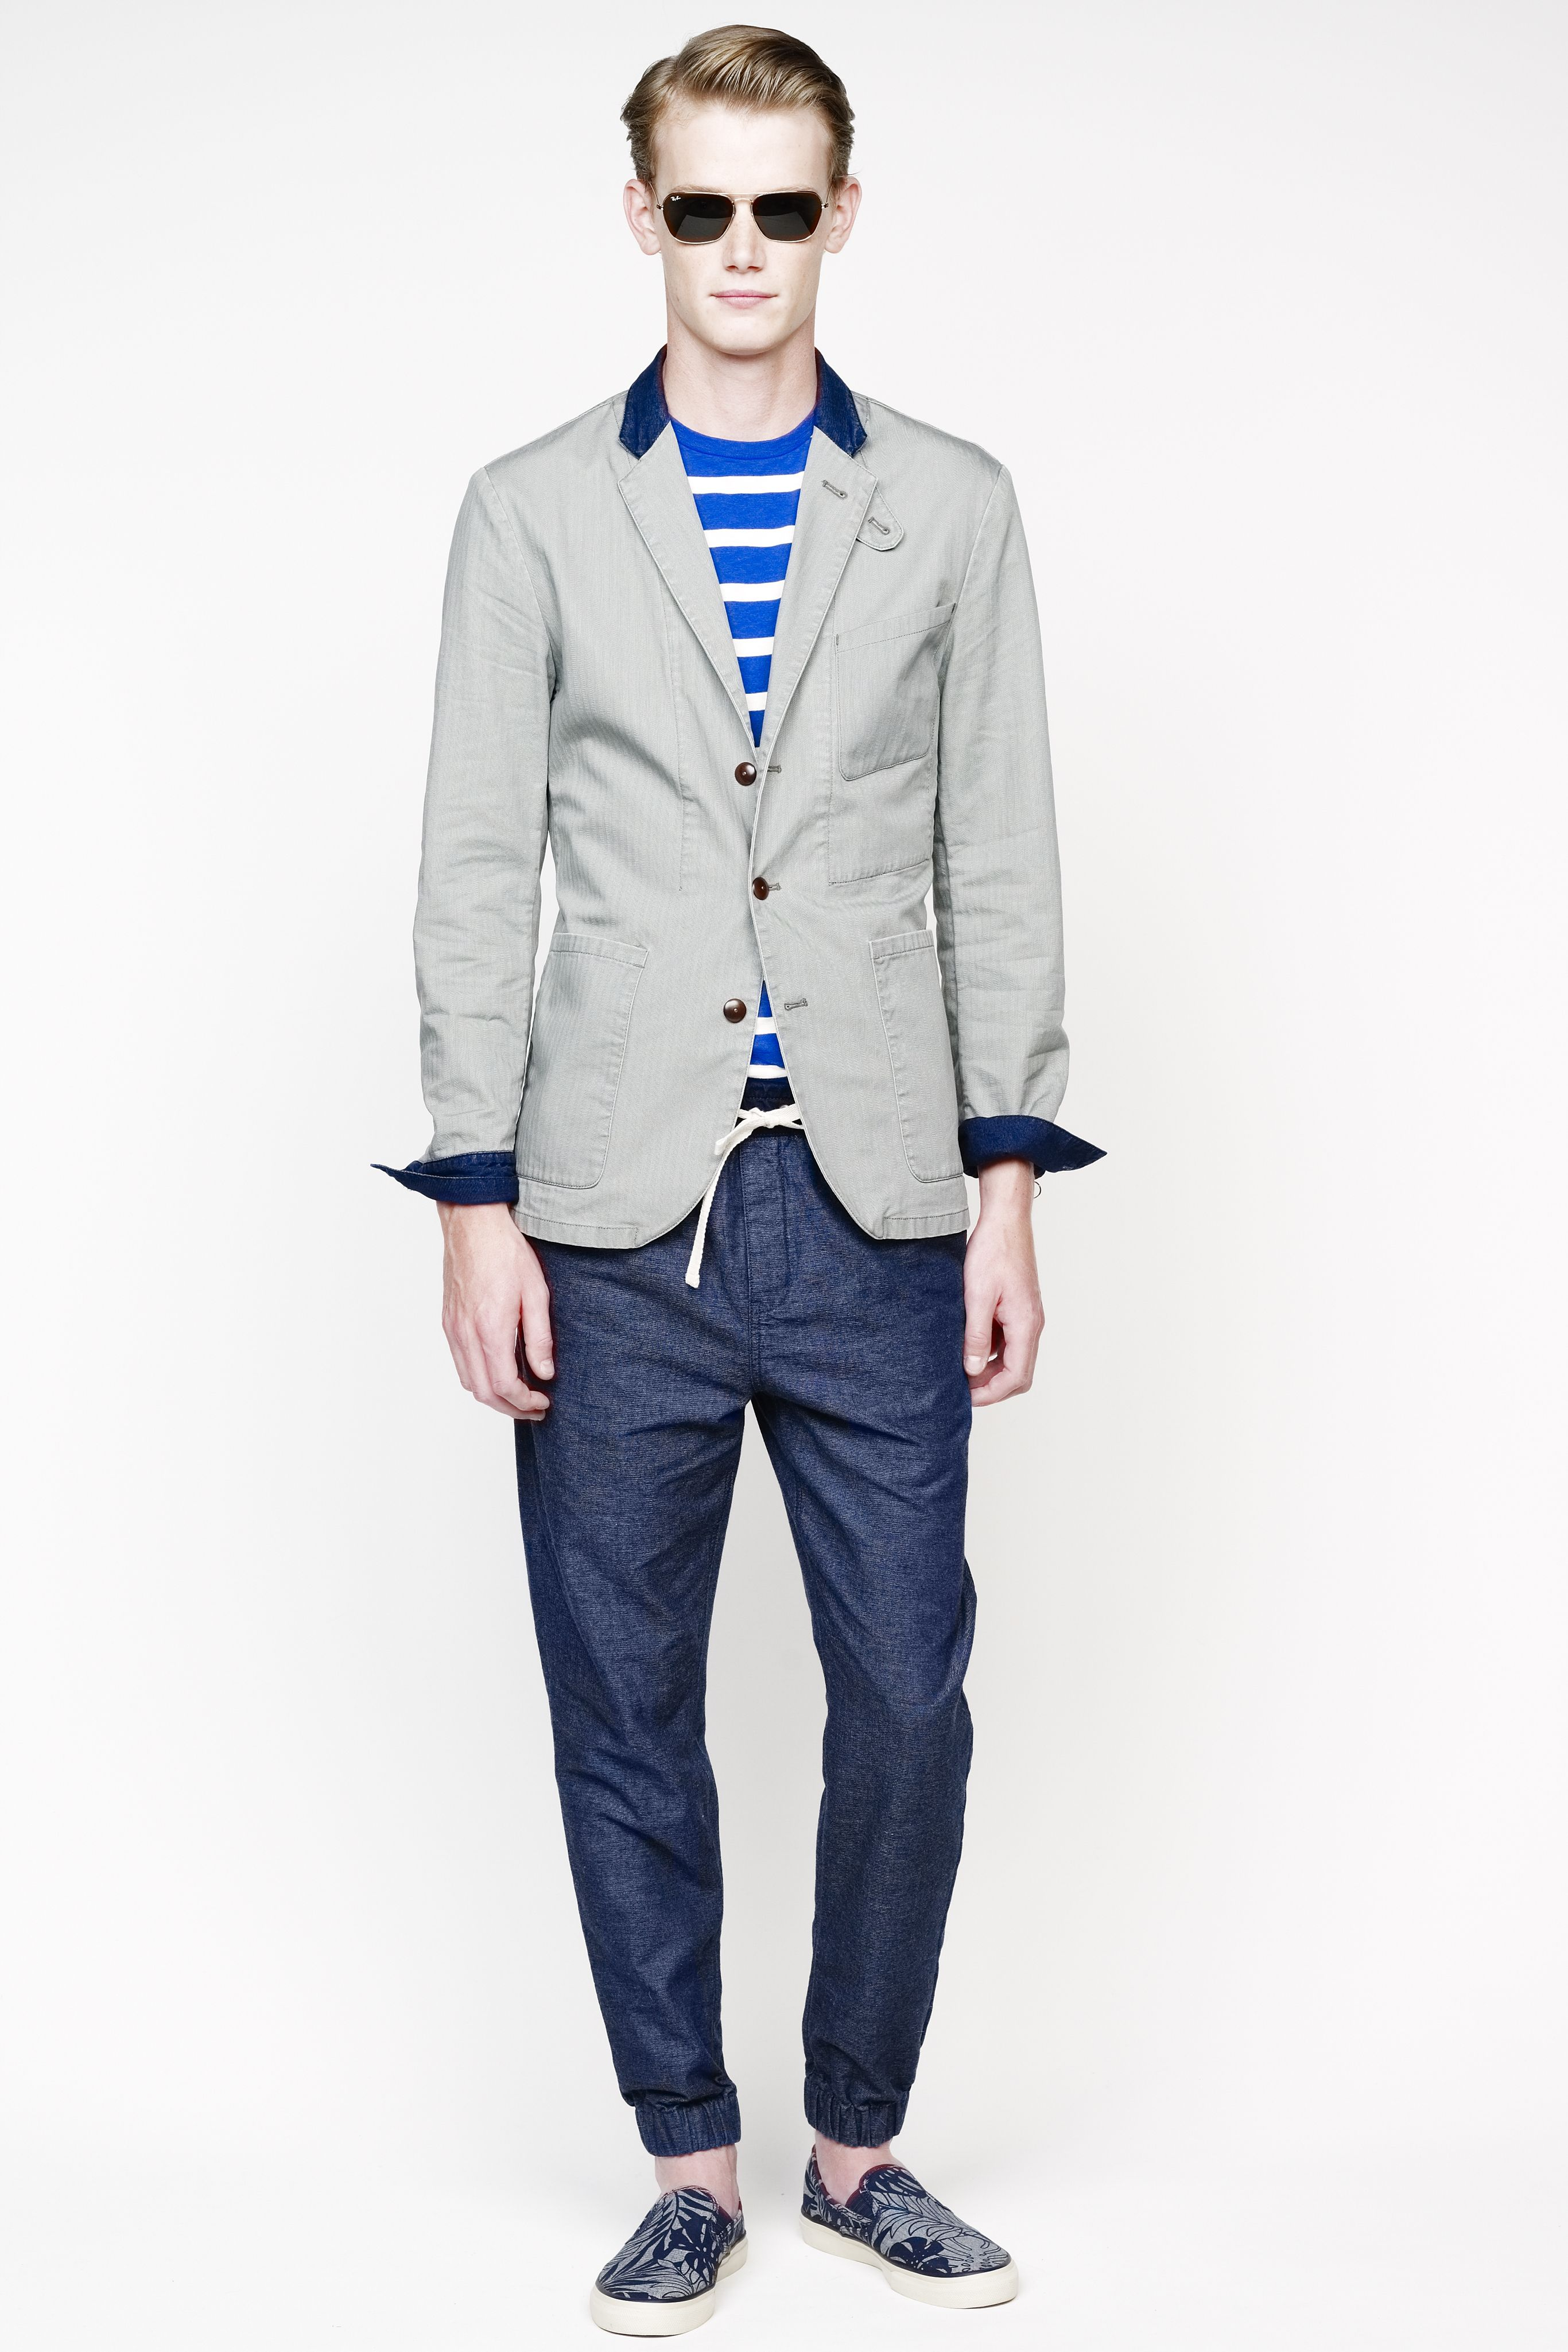 J.Crew Menswear: AW14 Collection forecasting